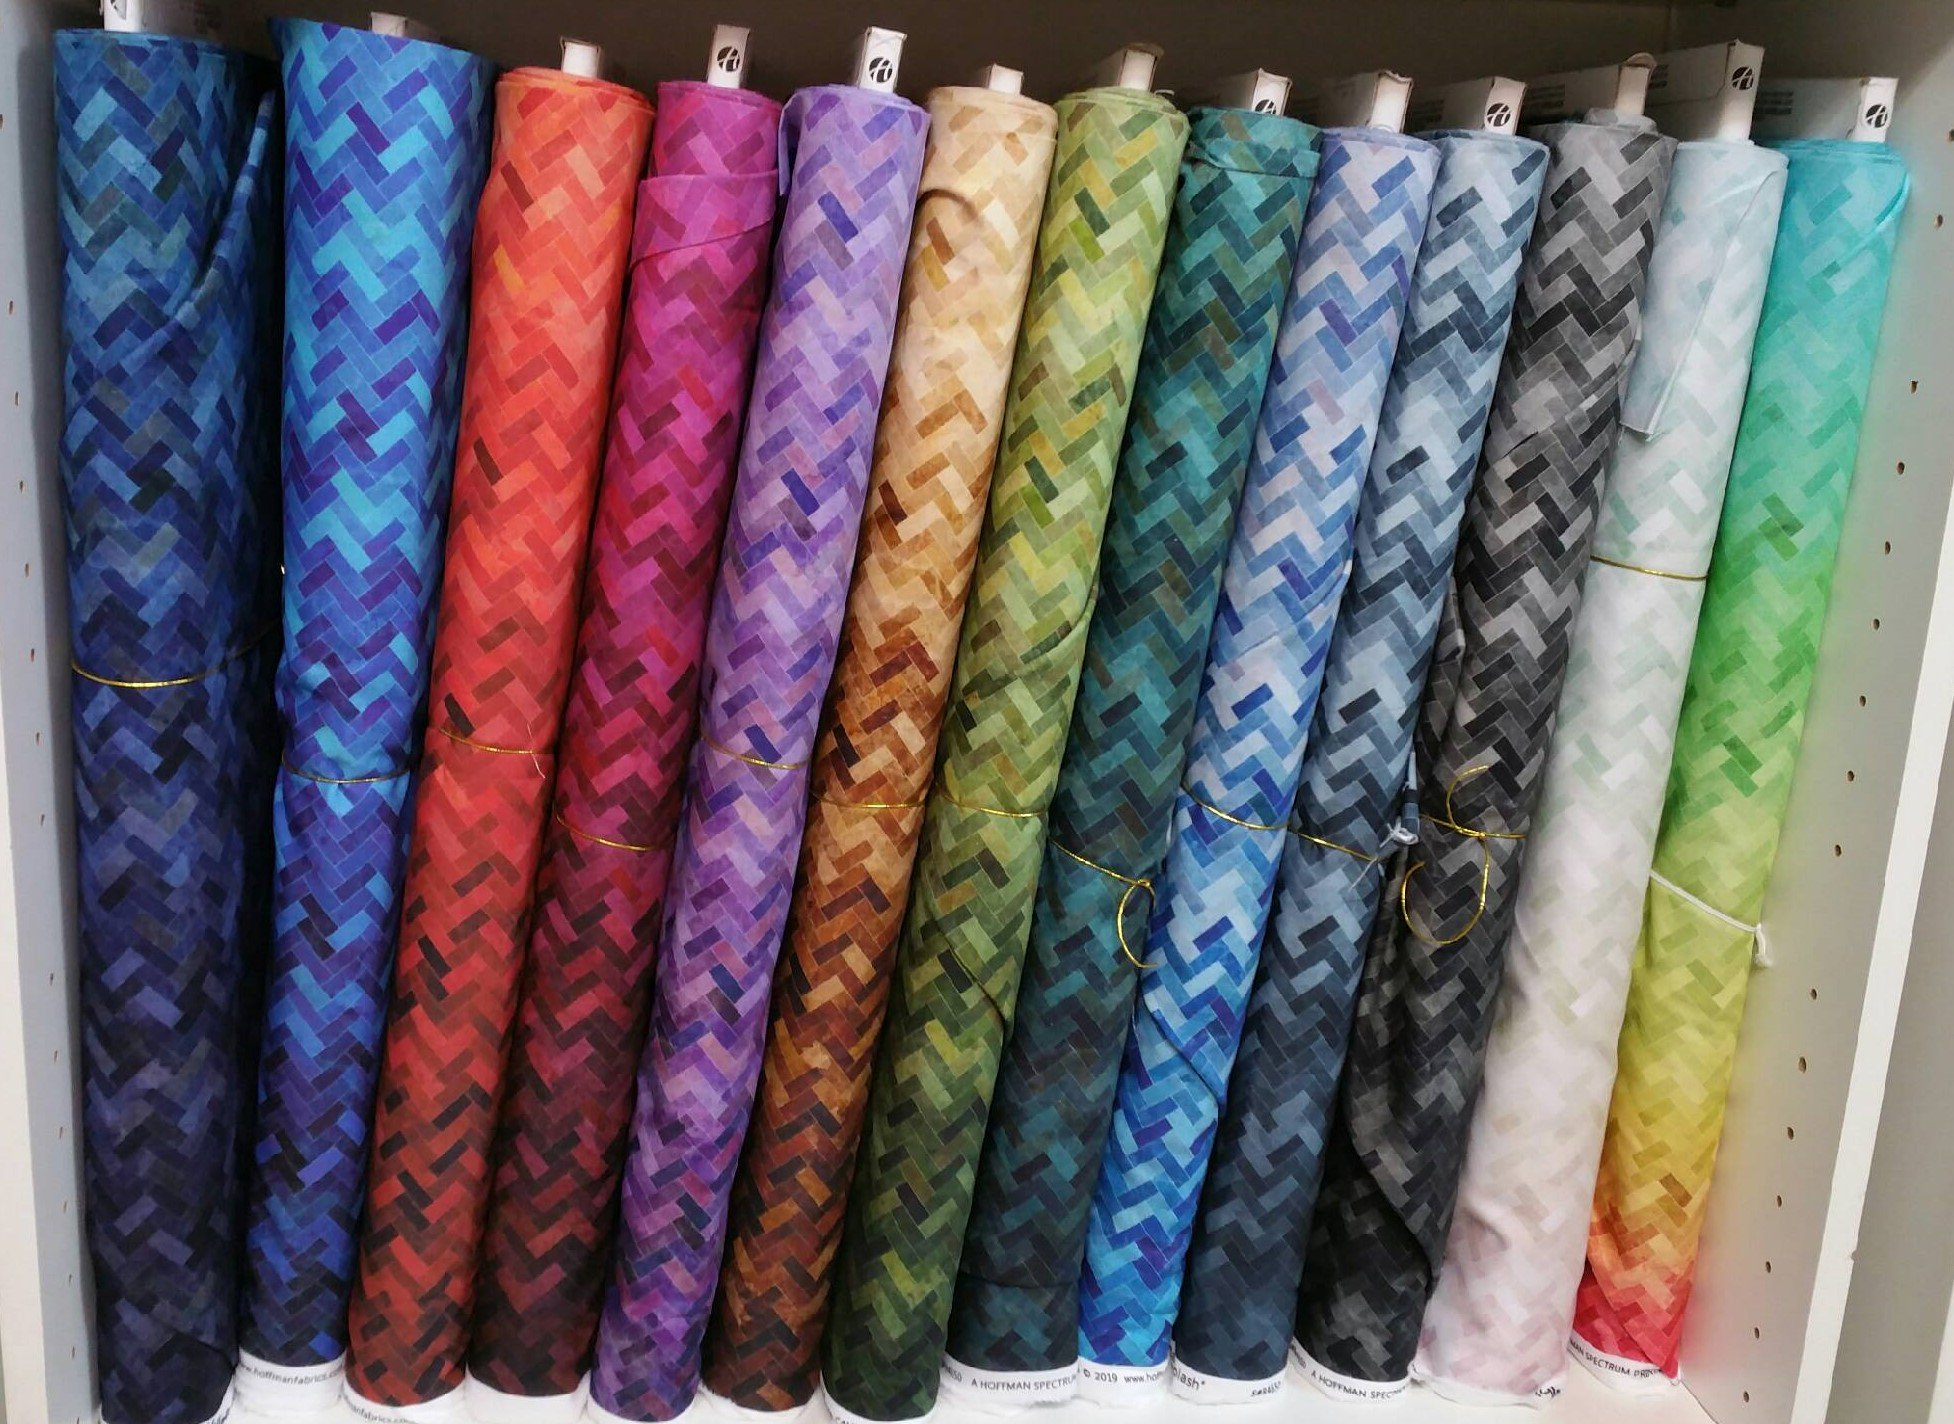 Qtr Yard Bundle of all 12 SKU's **DOES NOT INCLUDE RAINBOW**